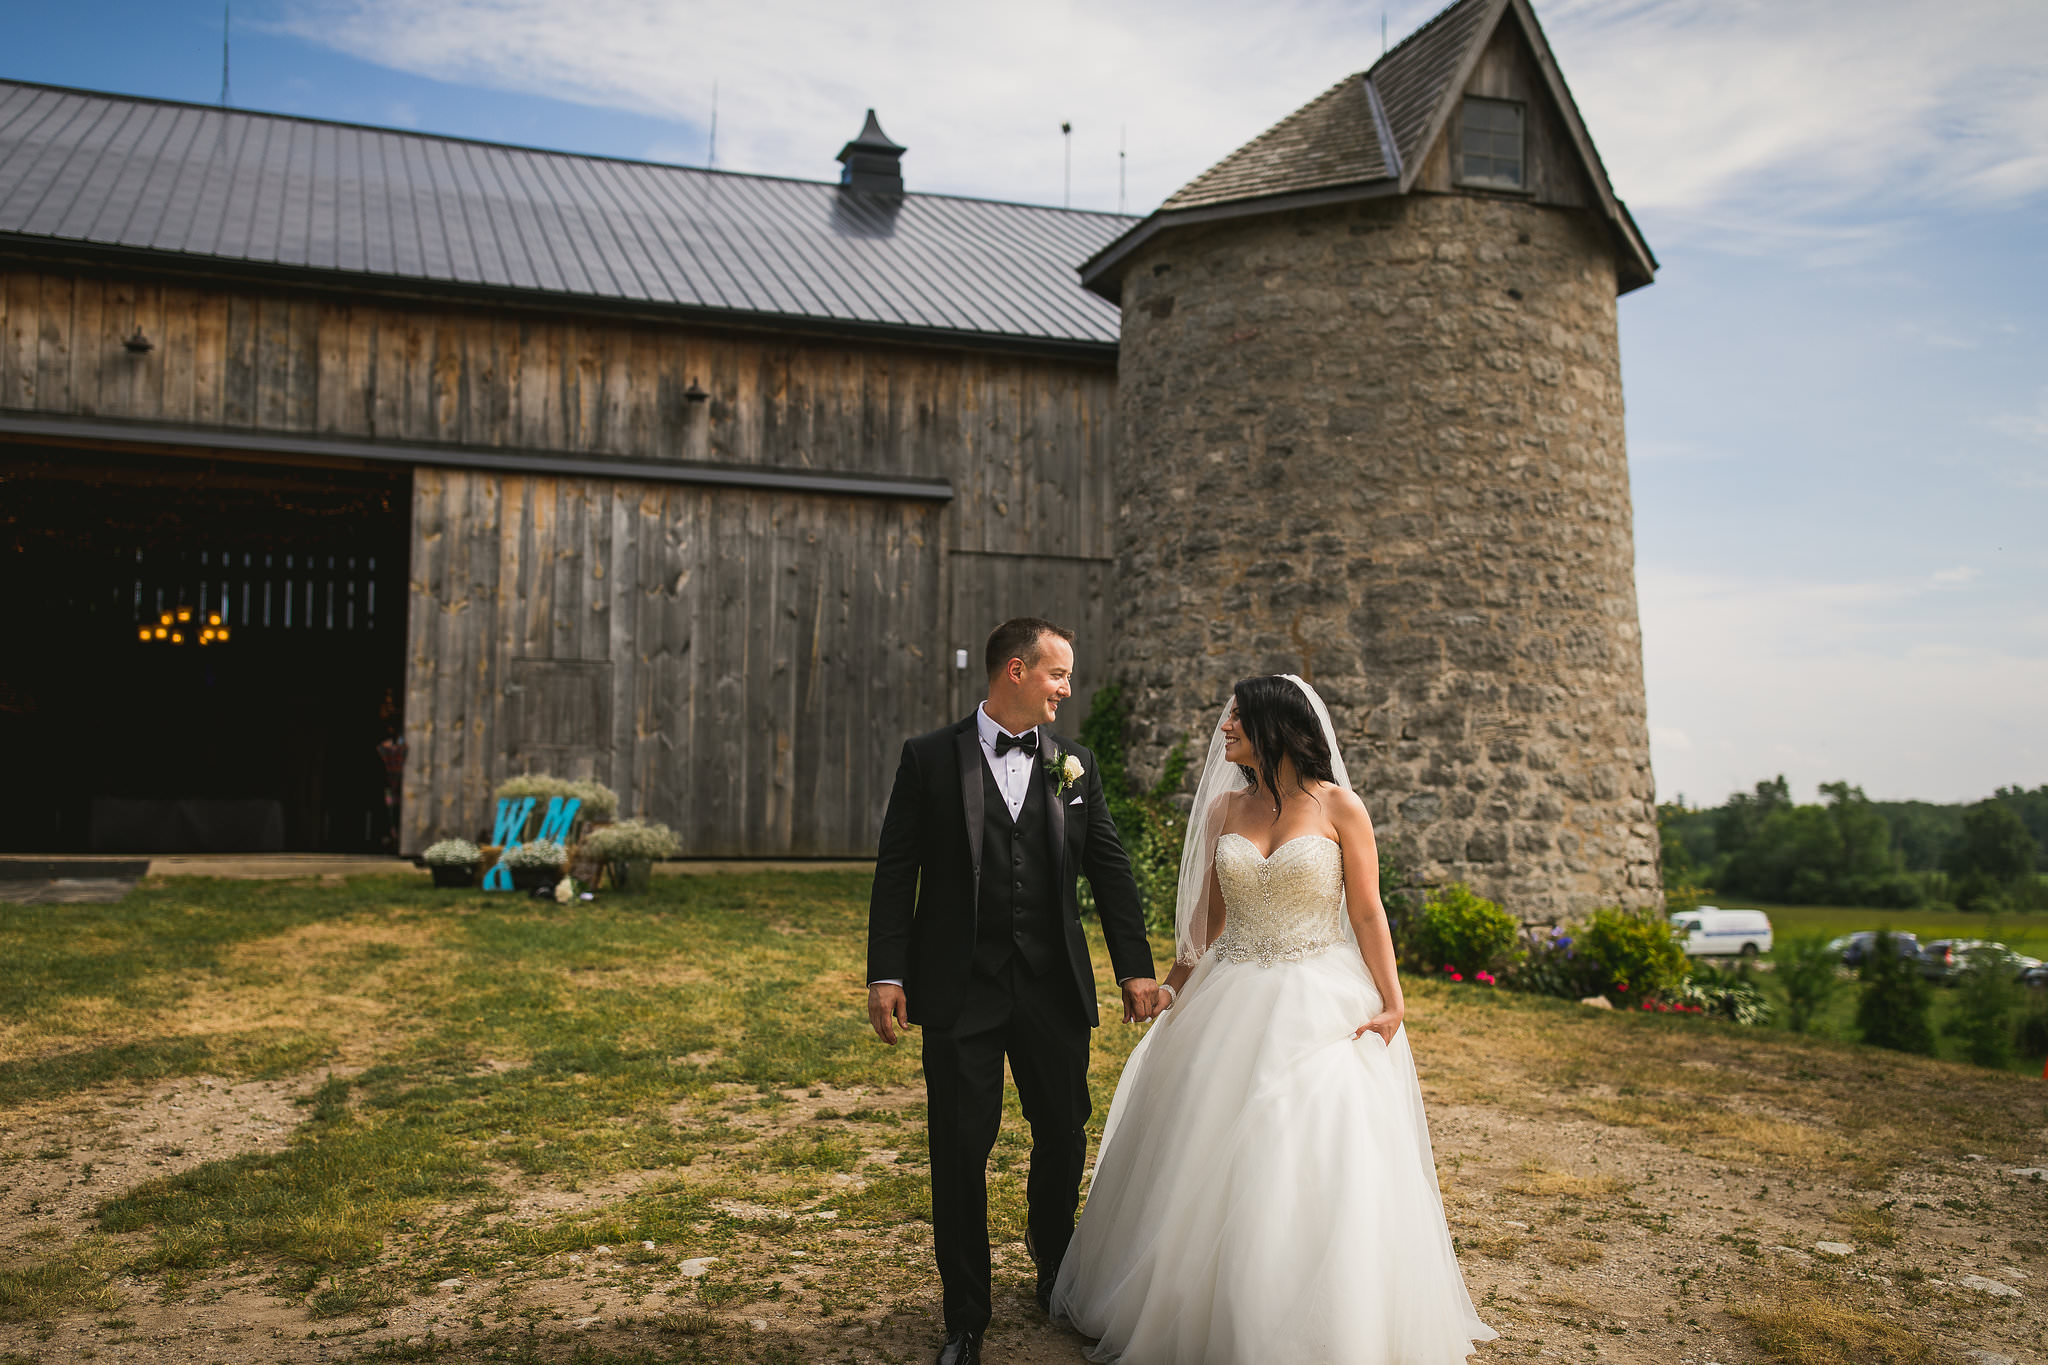 Marguerite Wayne Stoneacre Farm Puslinch Wedding Photos 506 - Stoneacre Farm Wedding